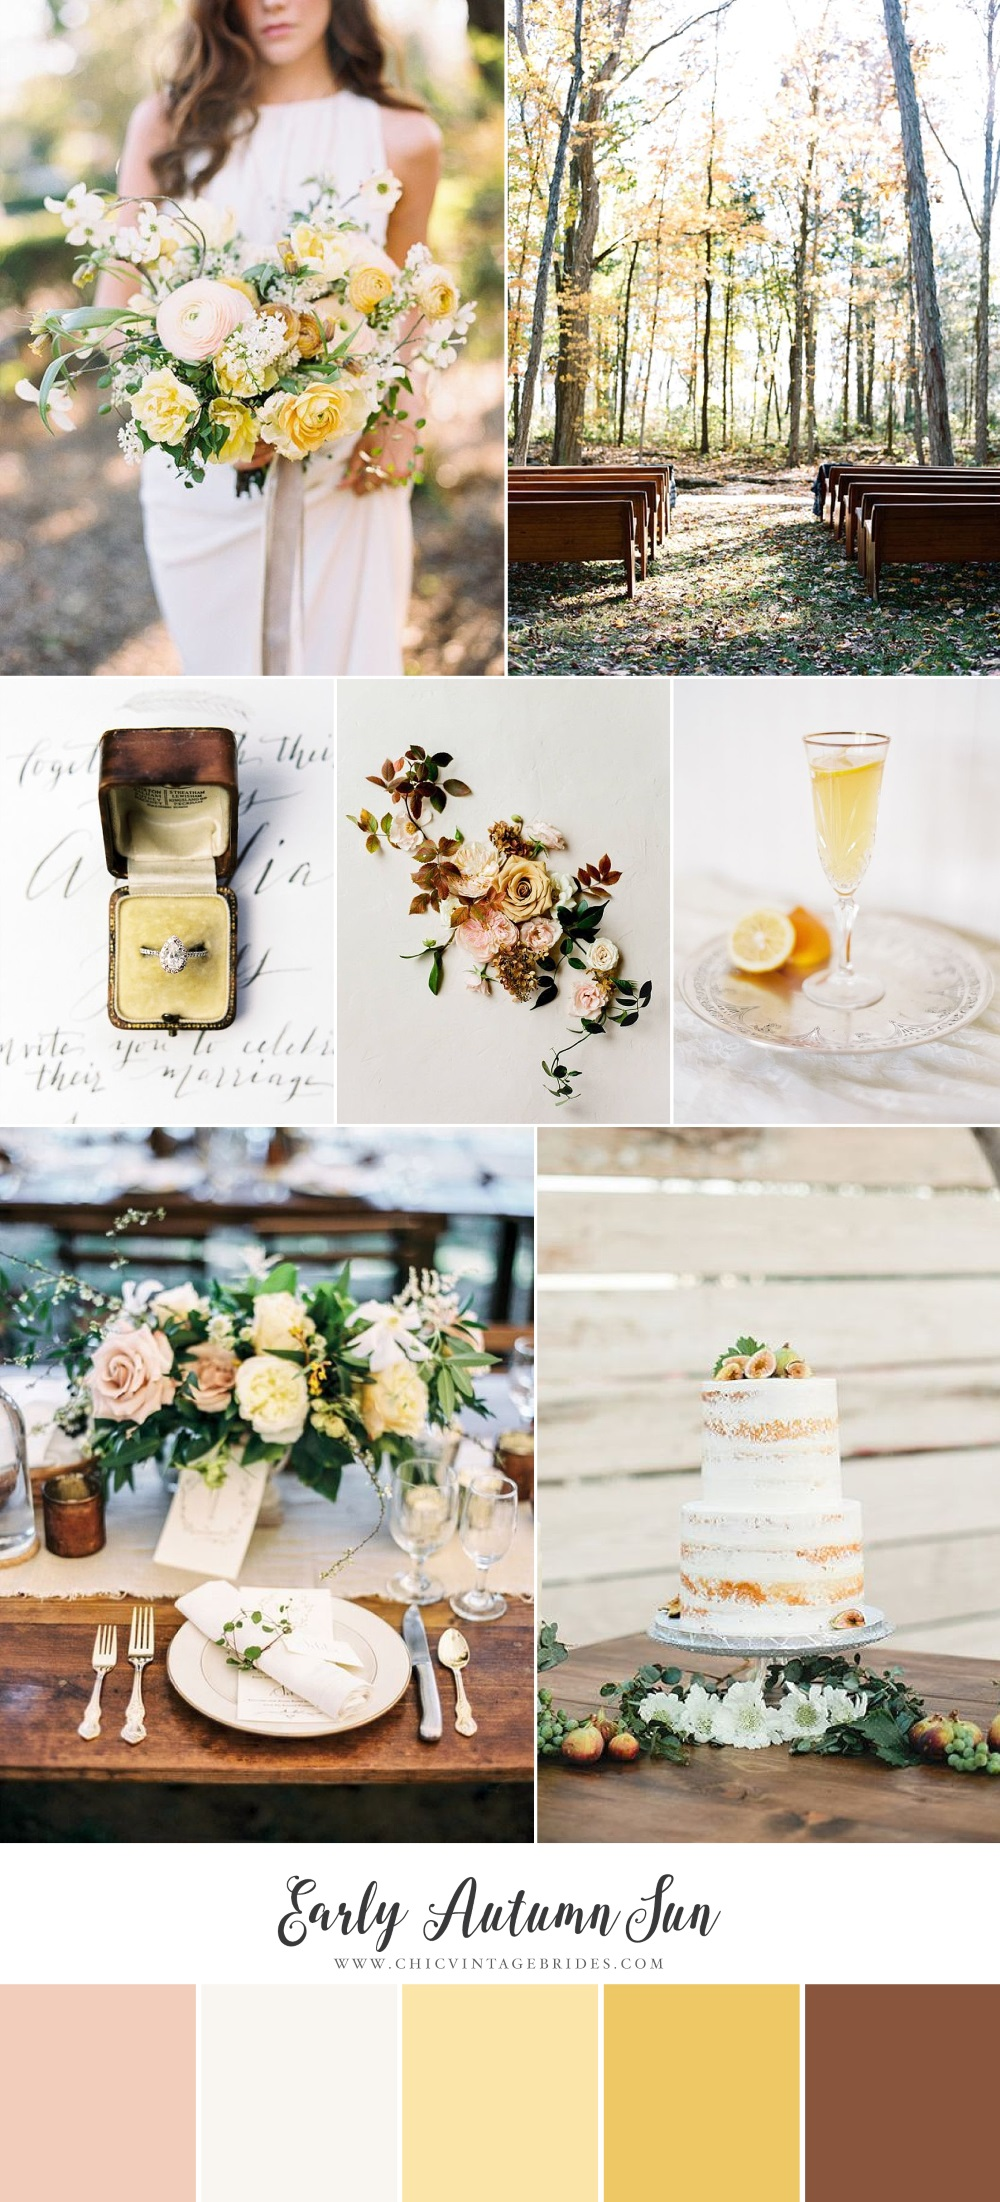 Early Autumn Sun Wedding Inspiration Board